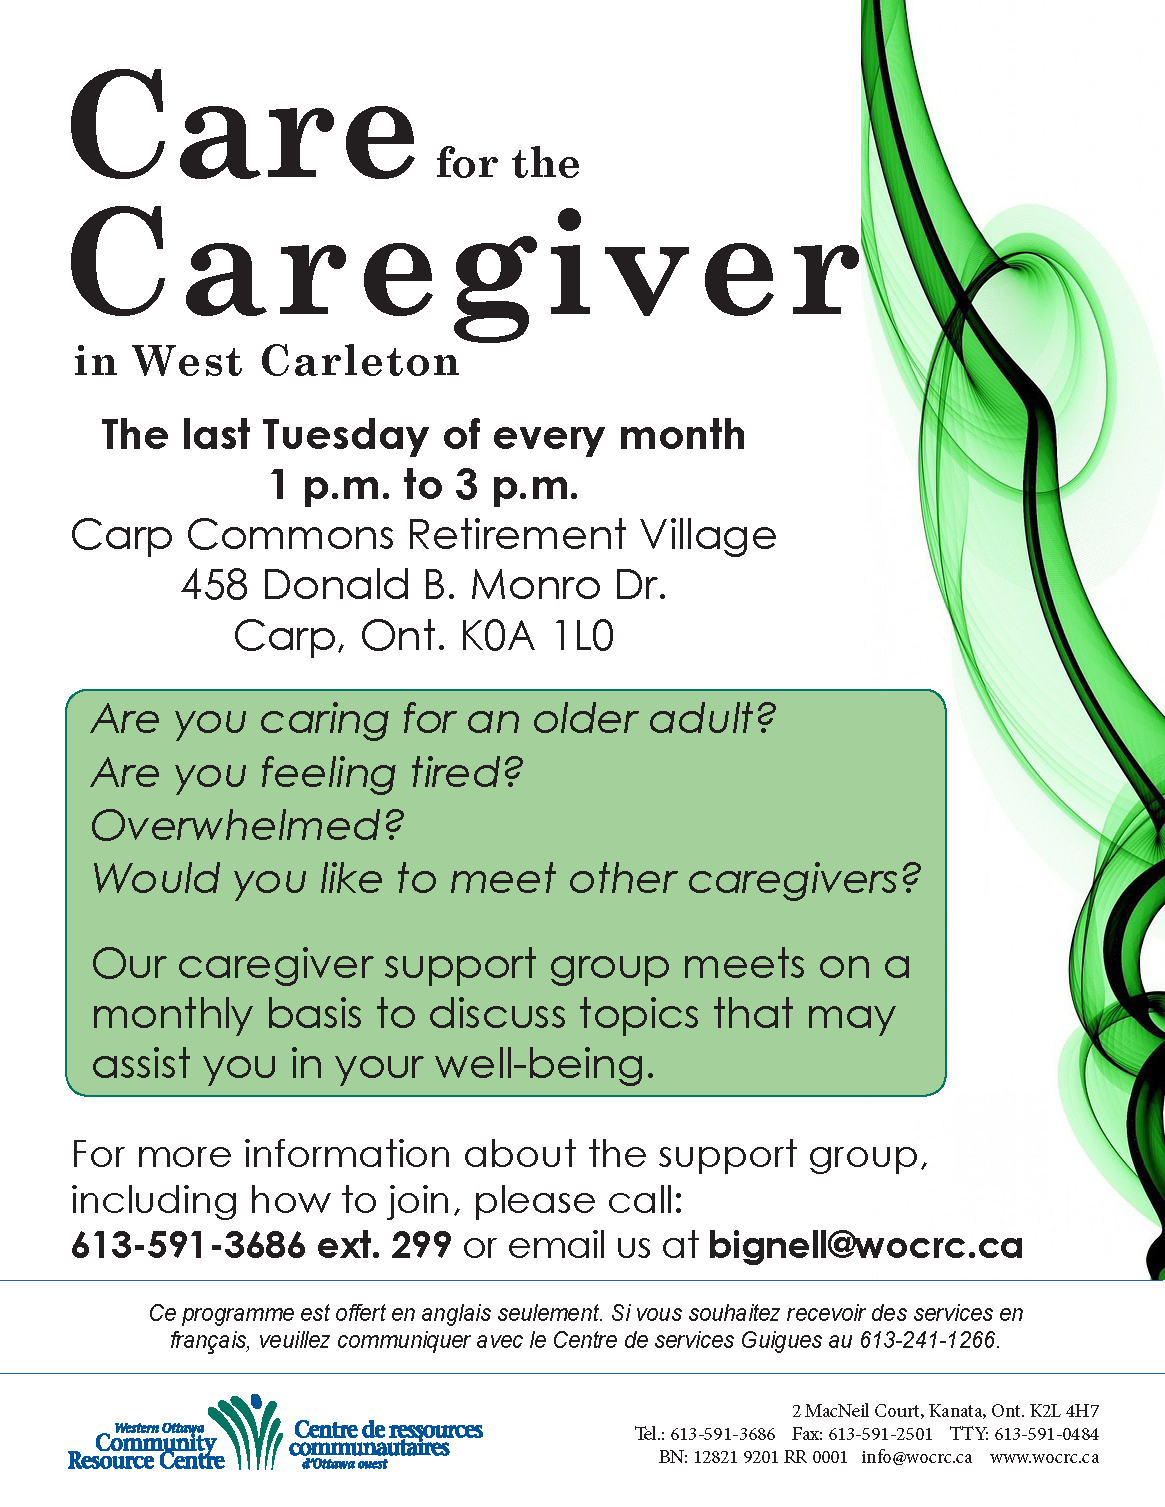 Care for the Caregiver - West Carleton